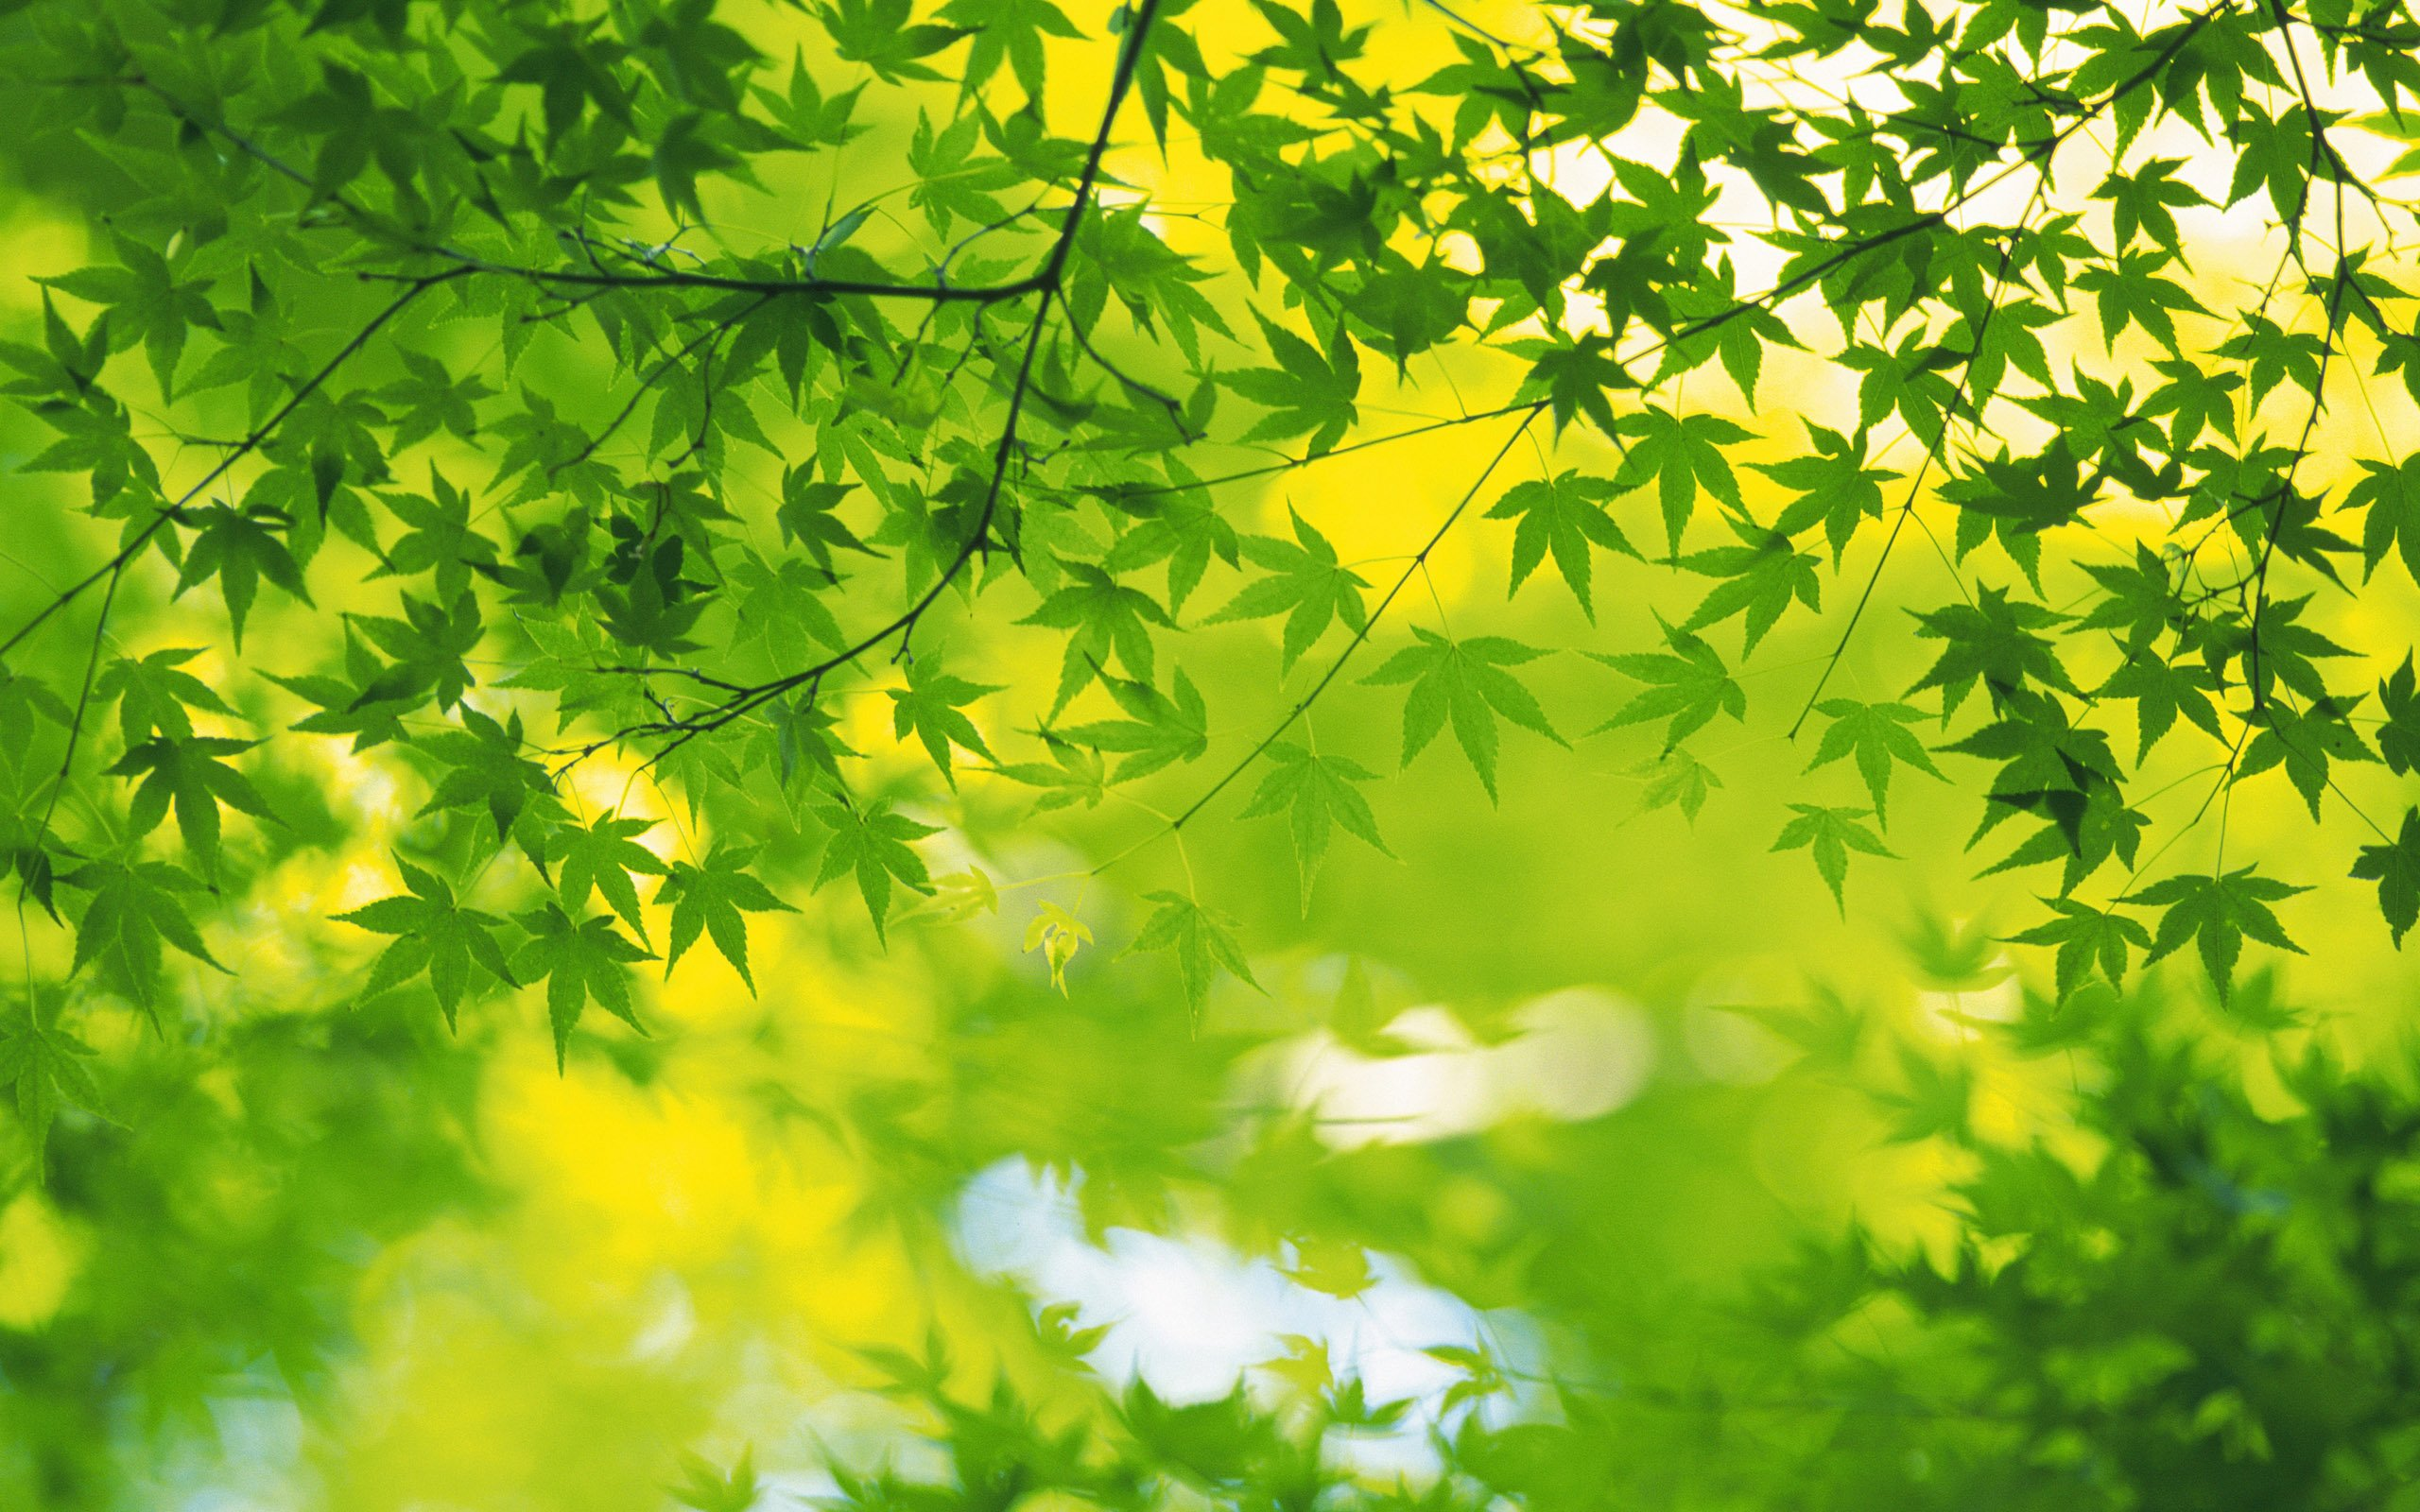 leaves Wallpapers 2560x1600 NO26 Desktop Wallpaper   Wallcoonet 2560x1600